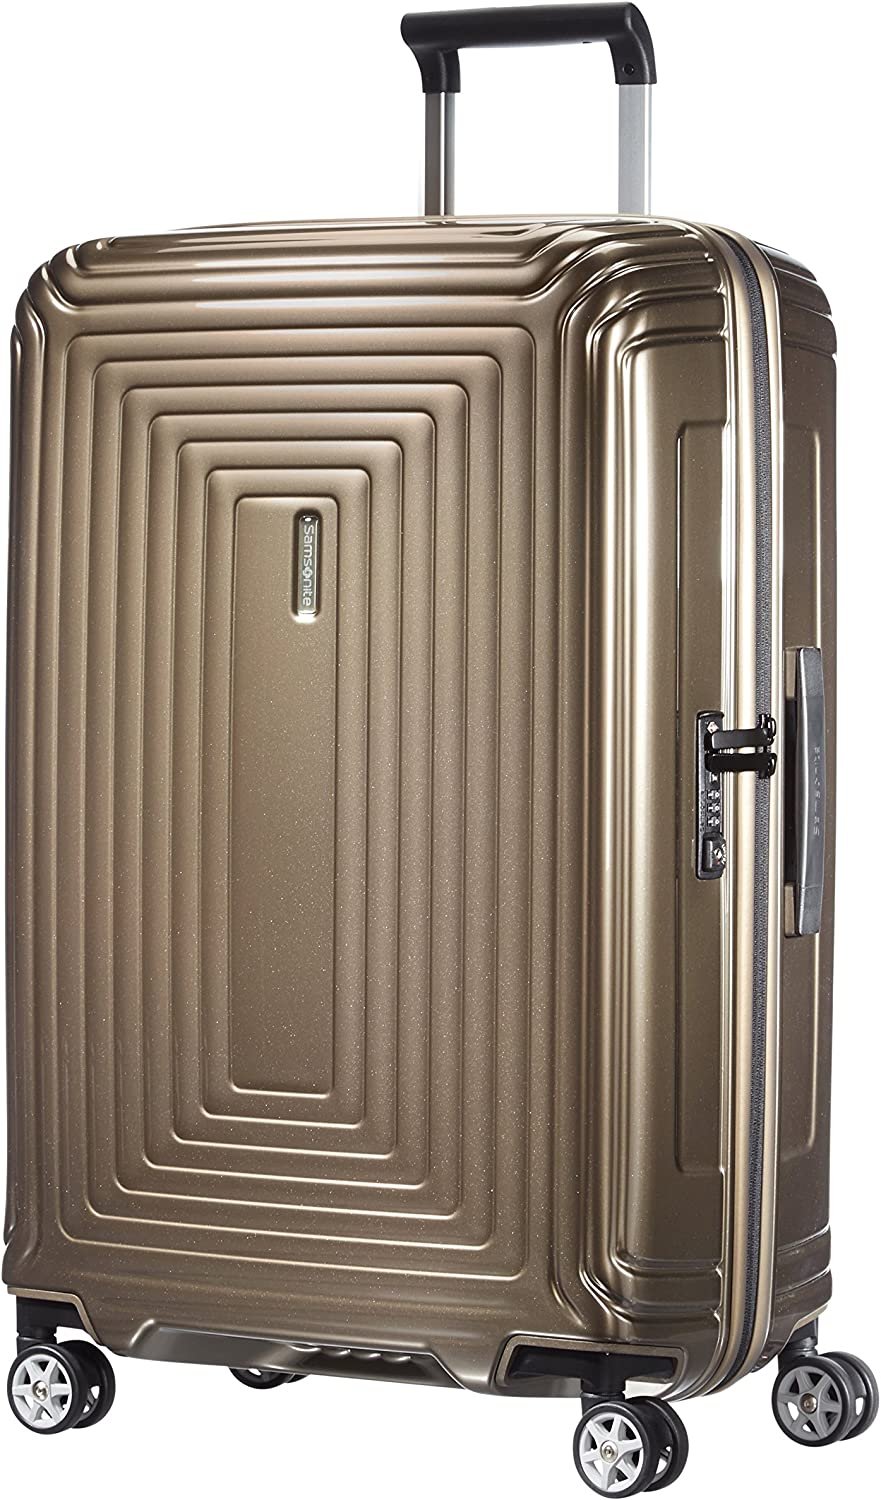 Samsonite Neopulse - Spinner M Maleta, 69 cm, 74 L, Marrón (Metallic Sand)